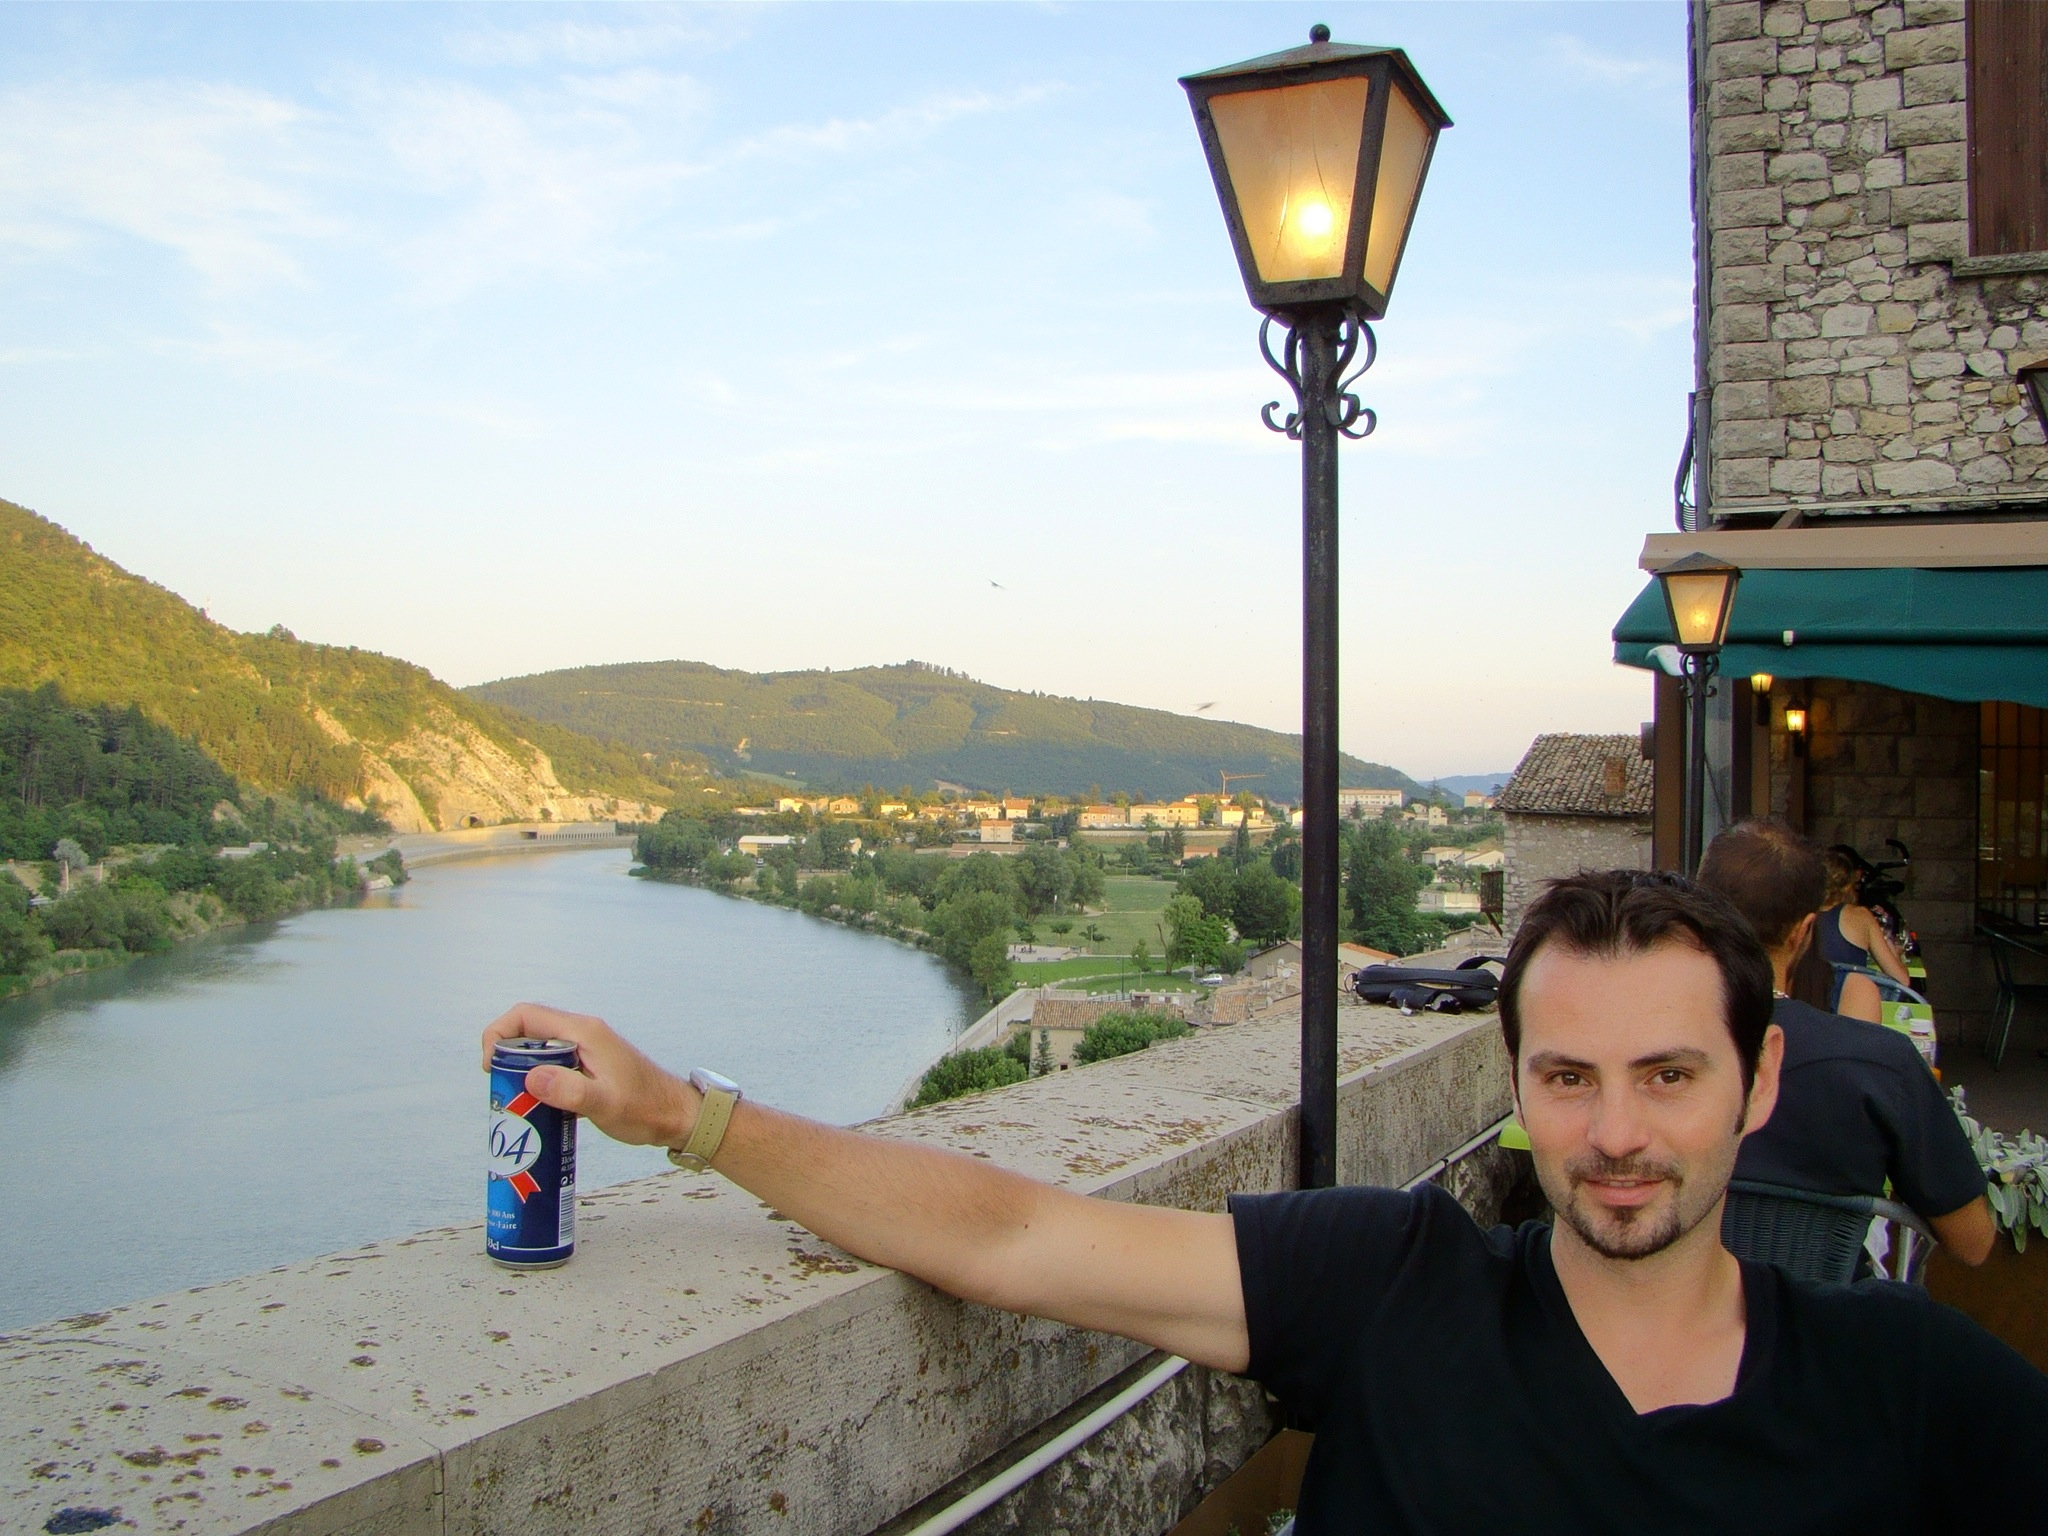 Beer stop in Sisteron (with Durance river in back)